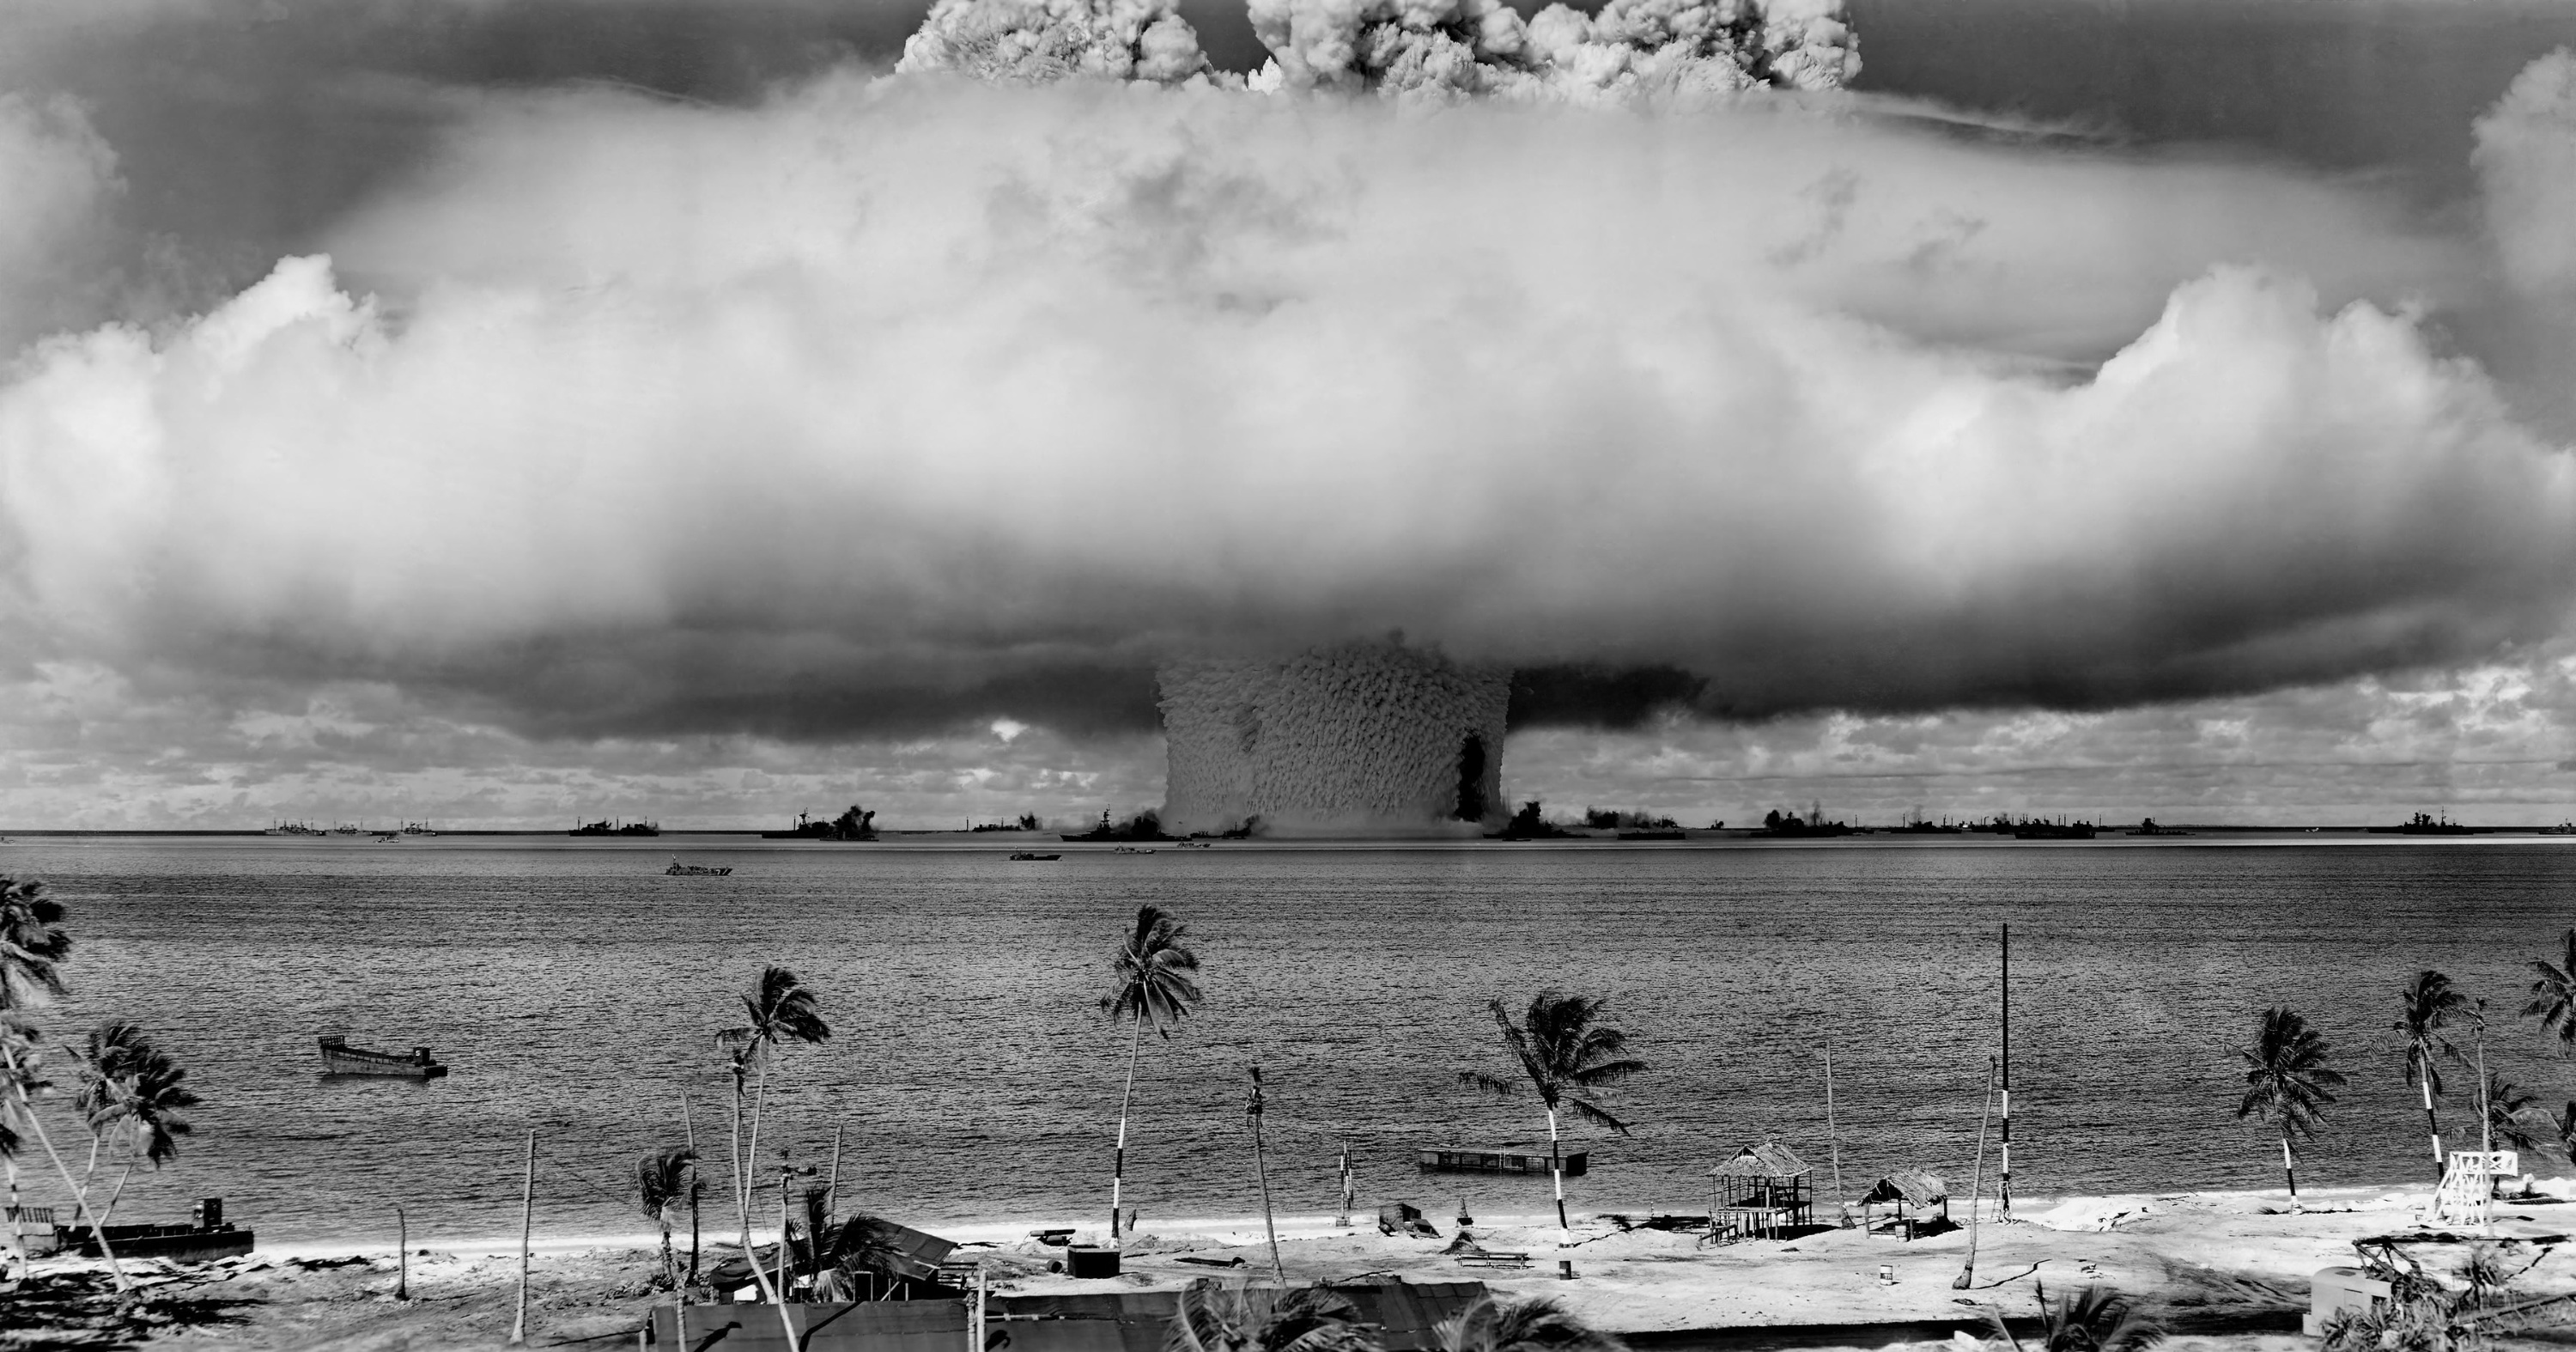 A new study reveals that radiation from nuclear tests during the Cold War led to many more deaths than previously thought.